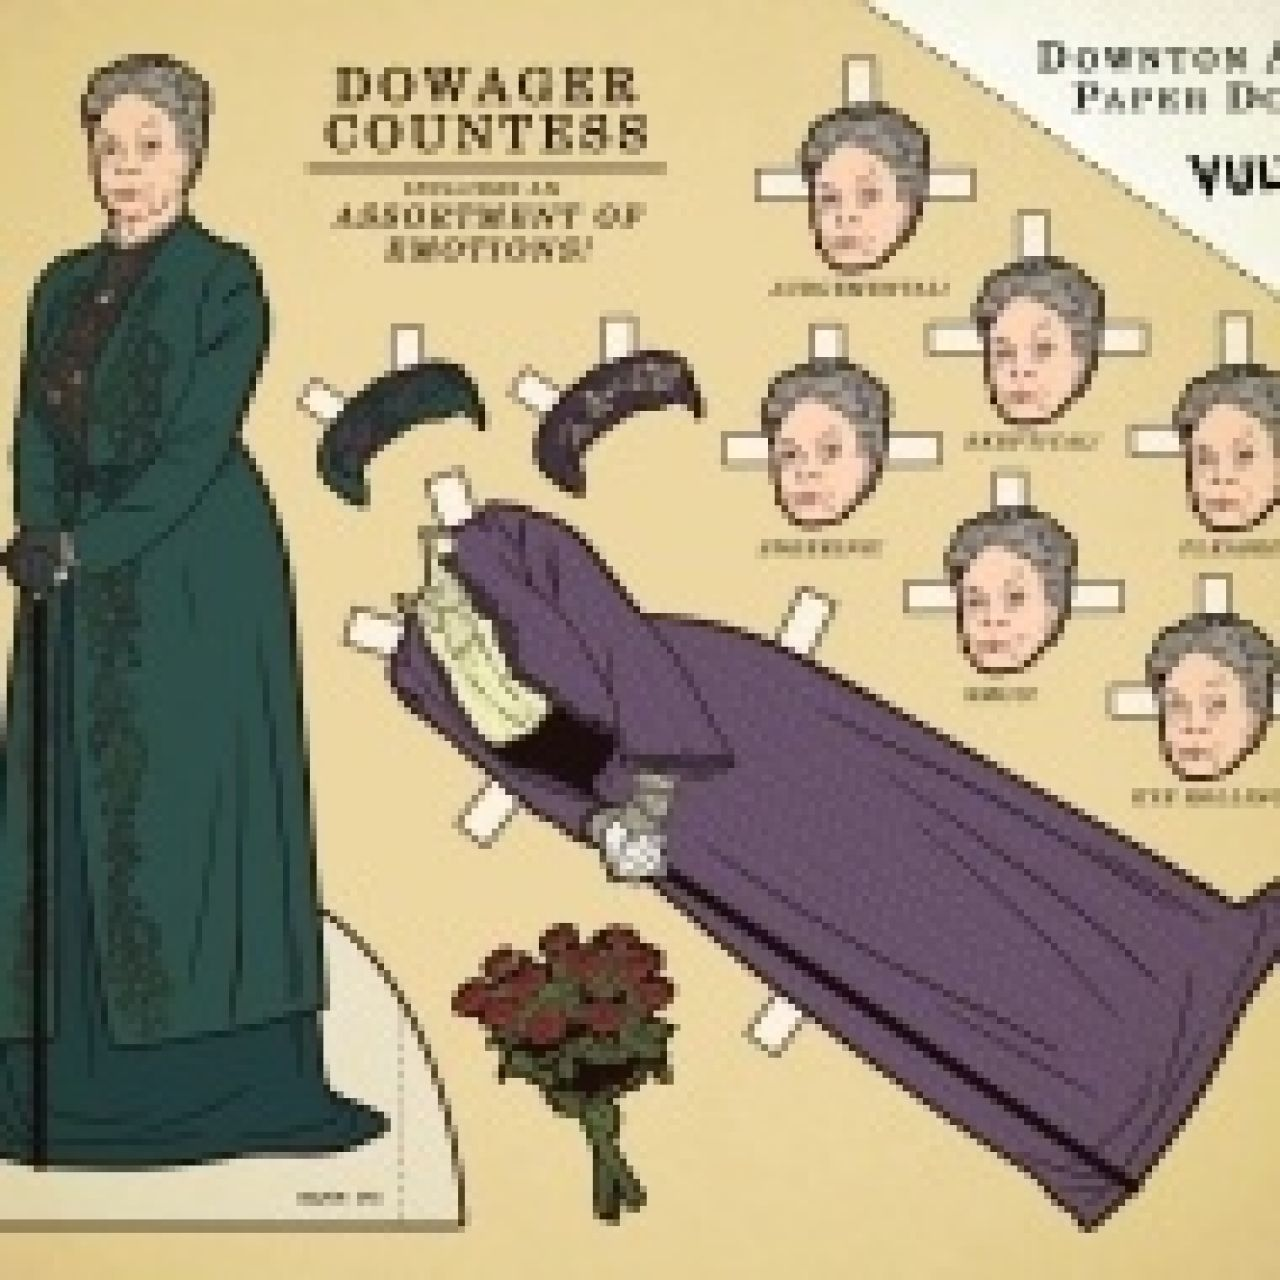 """Downton Abbey"" Paper Dolls from The Vulture"